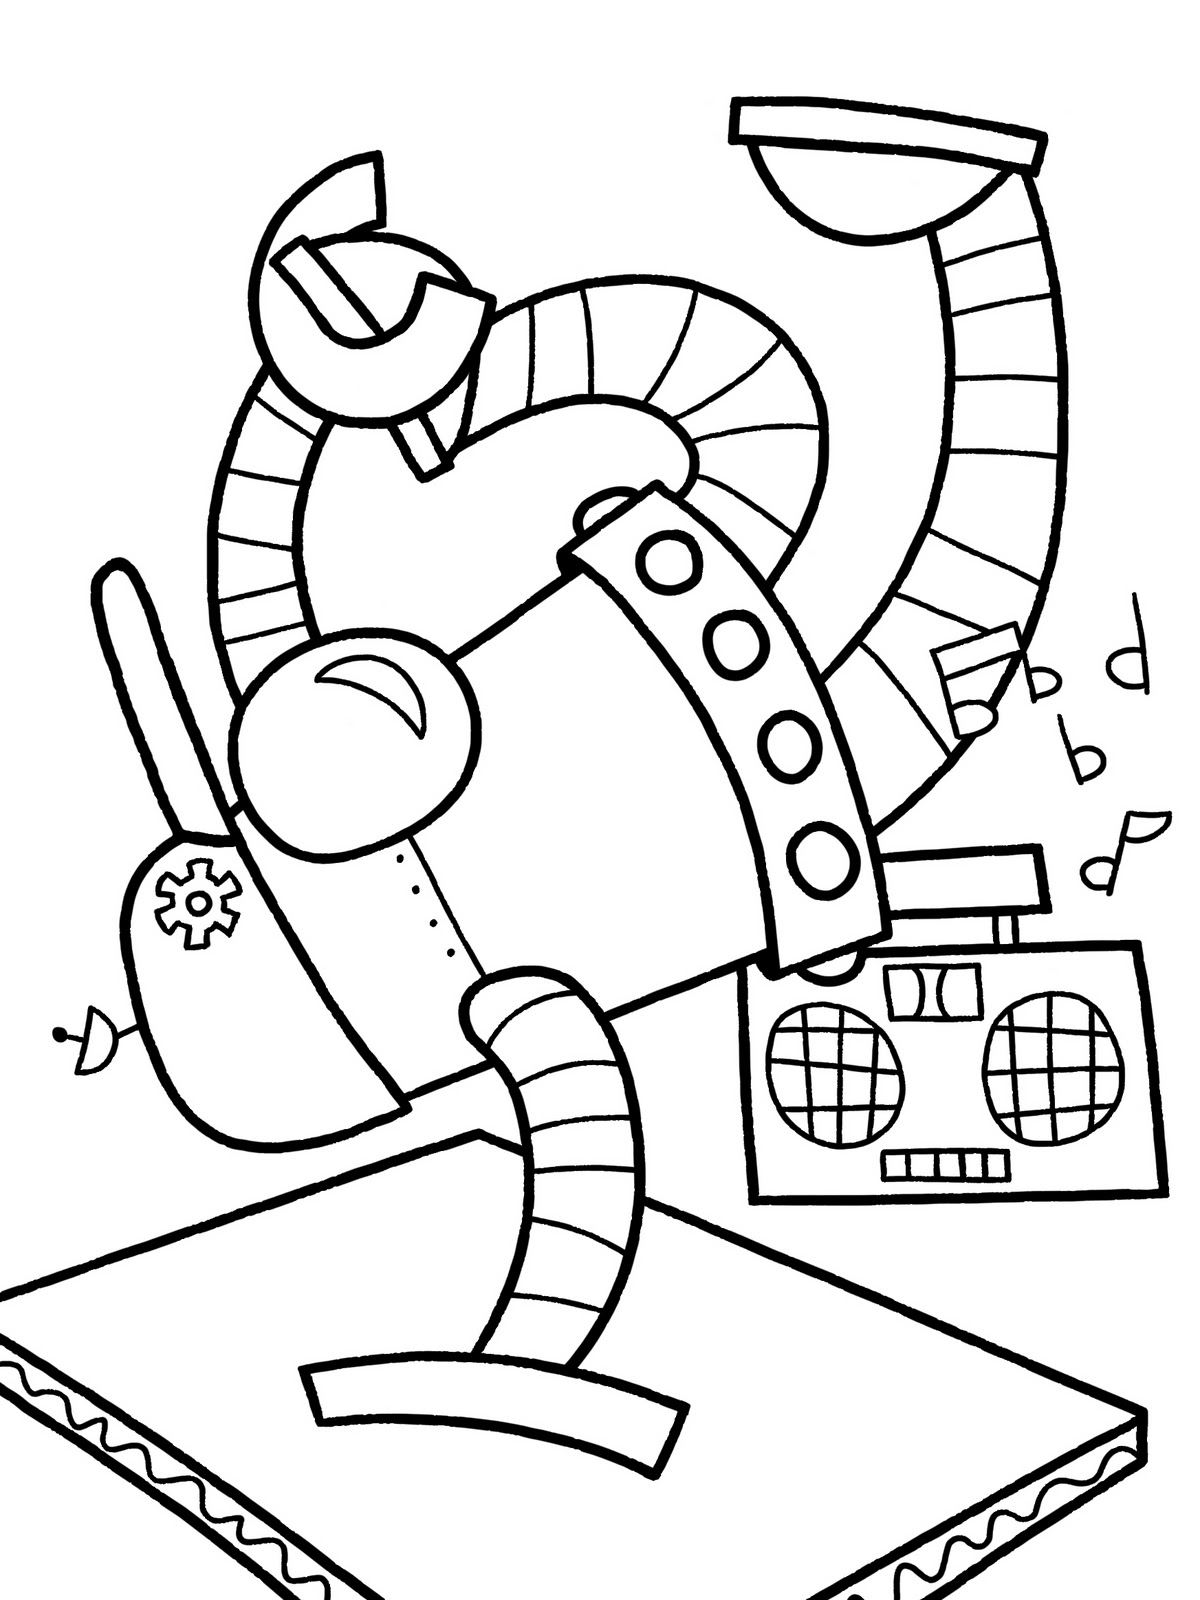 ready to robot coloring pages fighting robot coloring pages at getdrawings free download pages to robot ready coloring